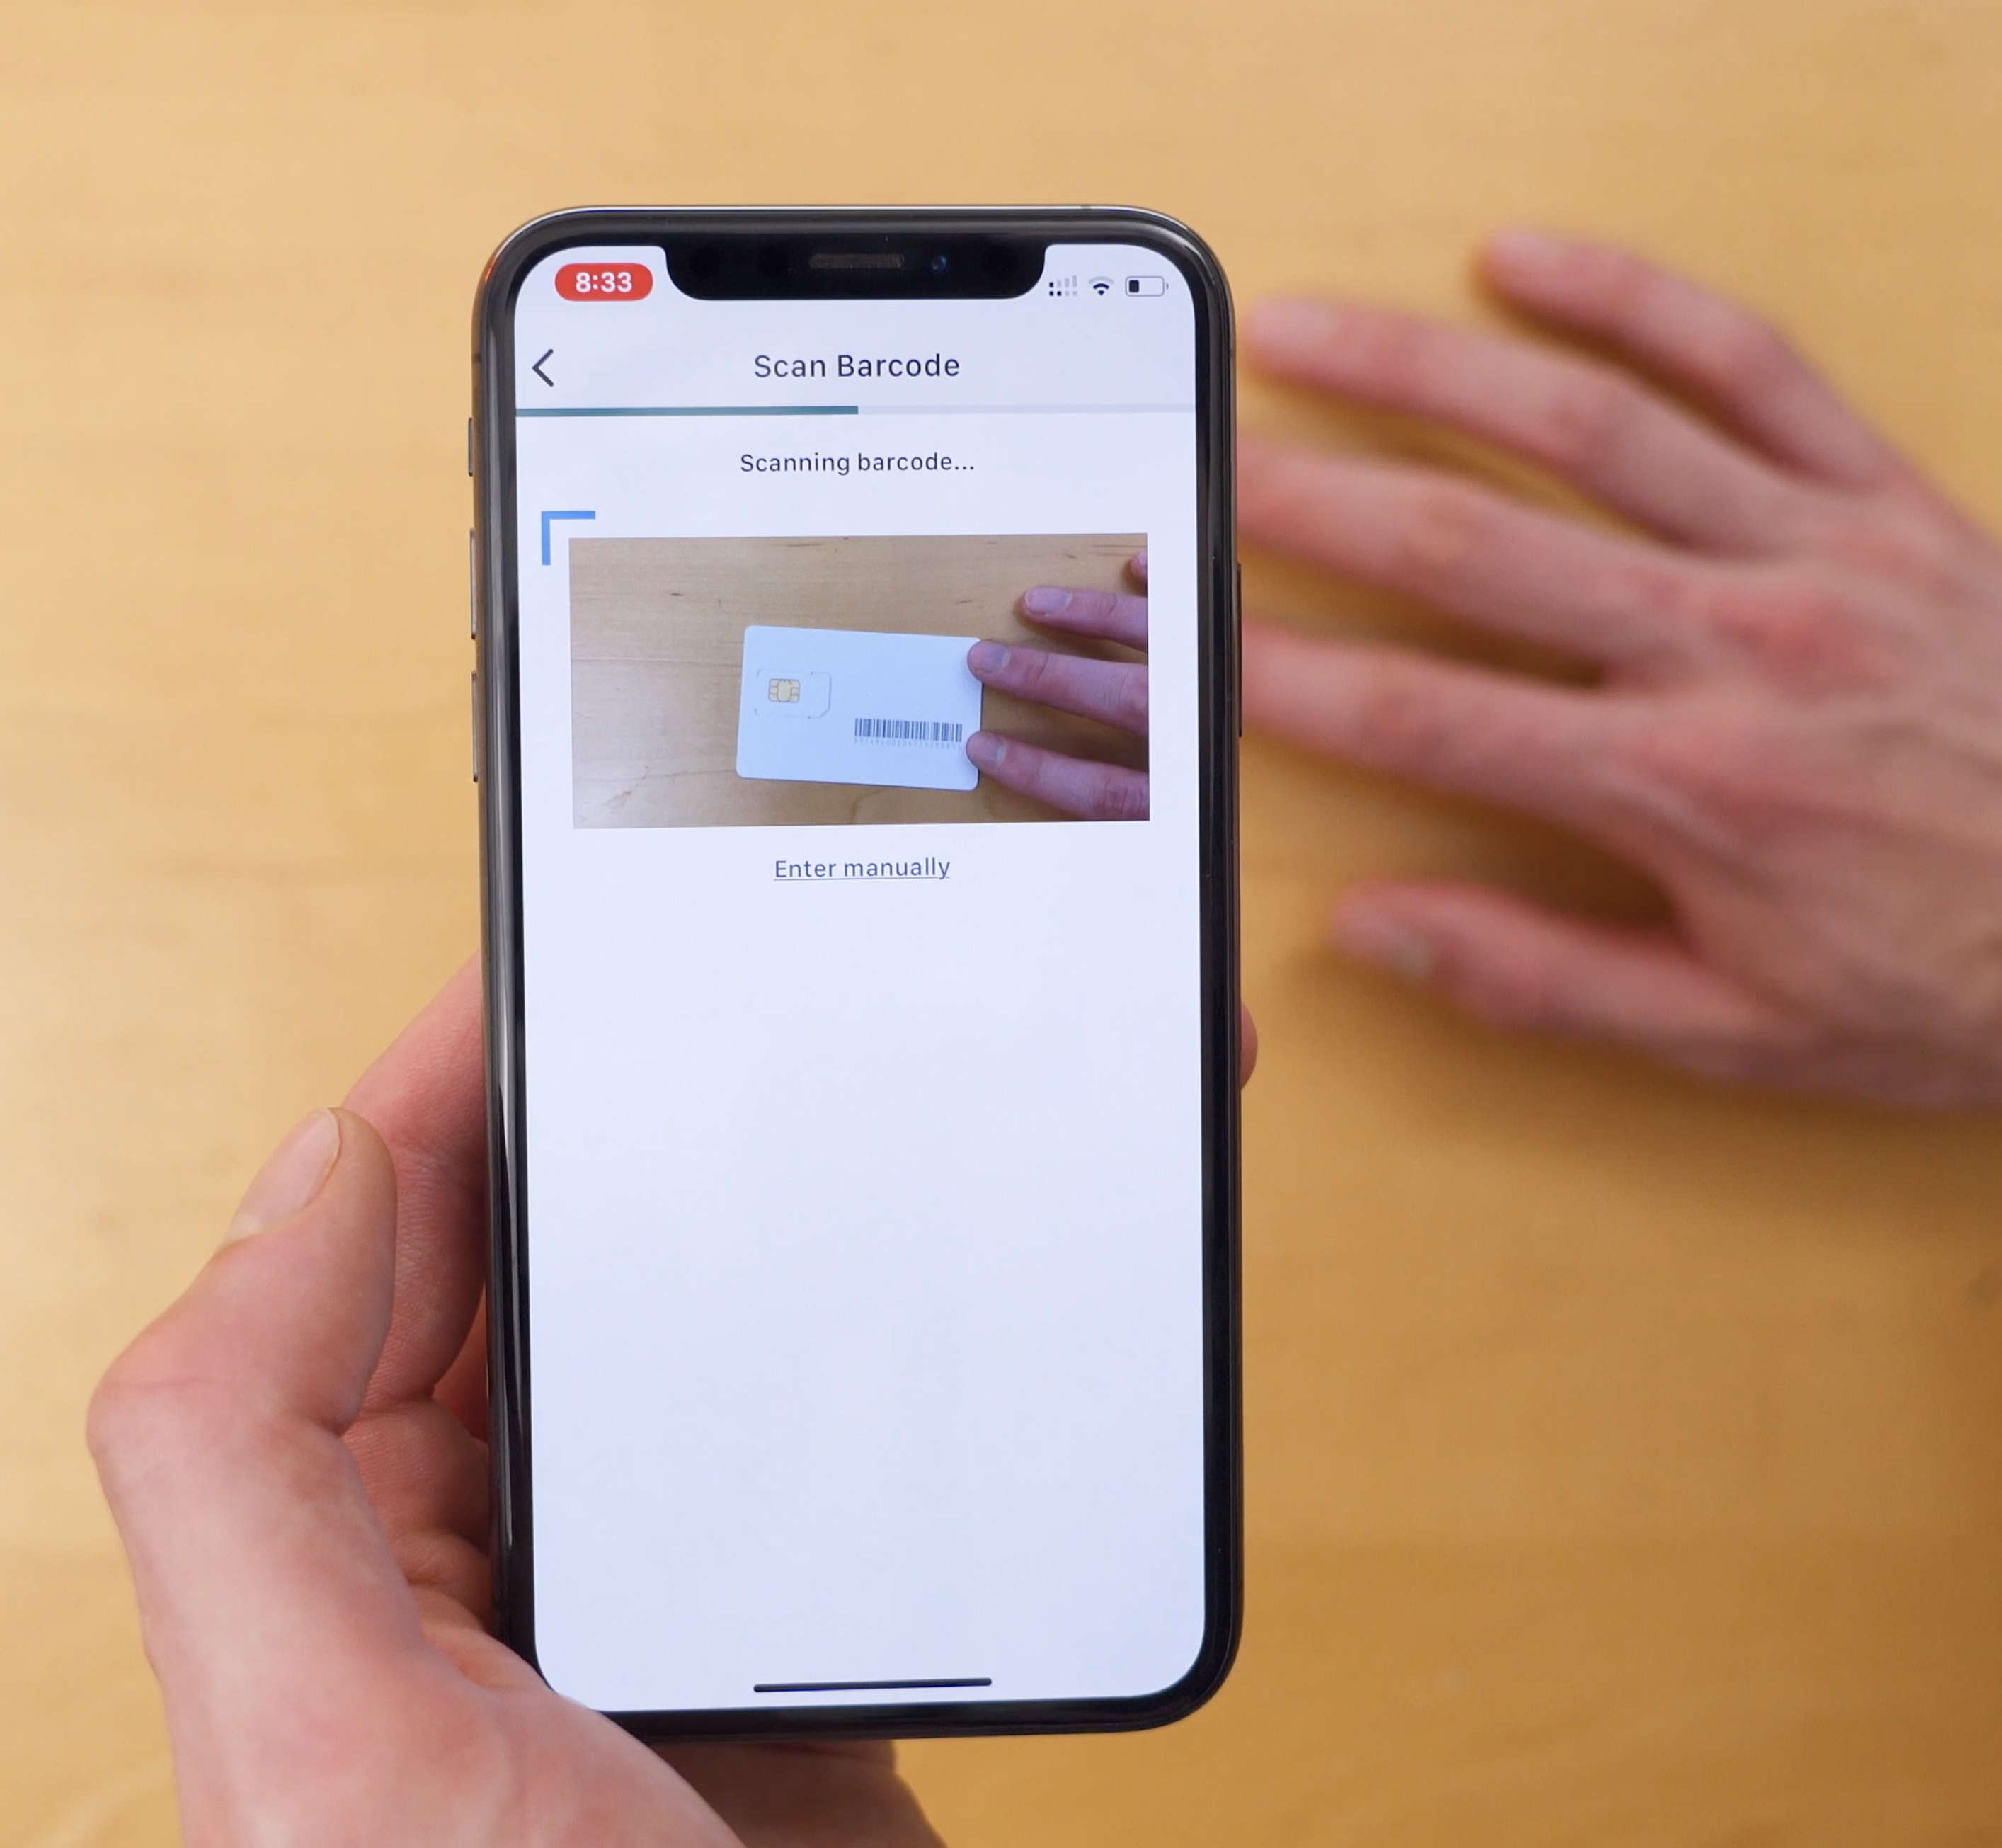 iPhone scanning Reach Mobile SIM card during activation process